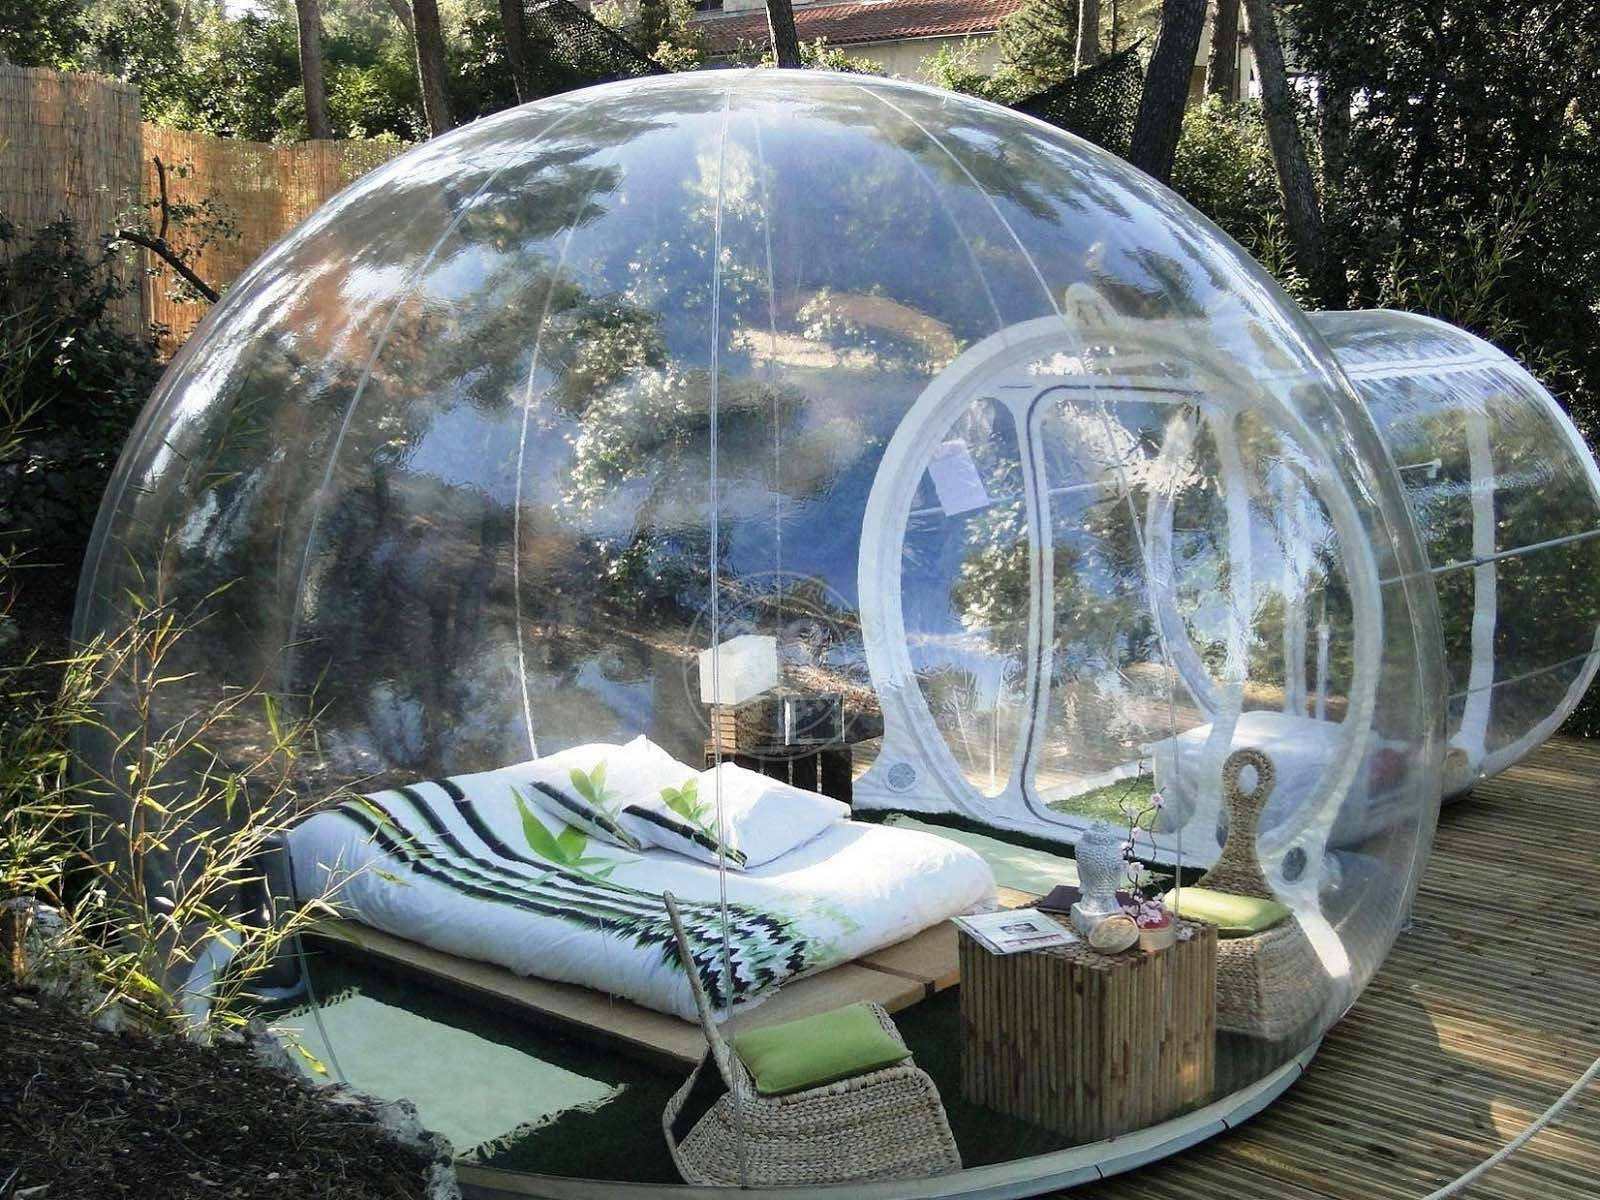 Designed Crystal Bubble Tent